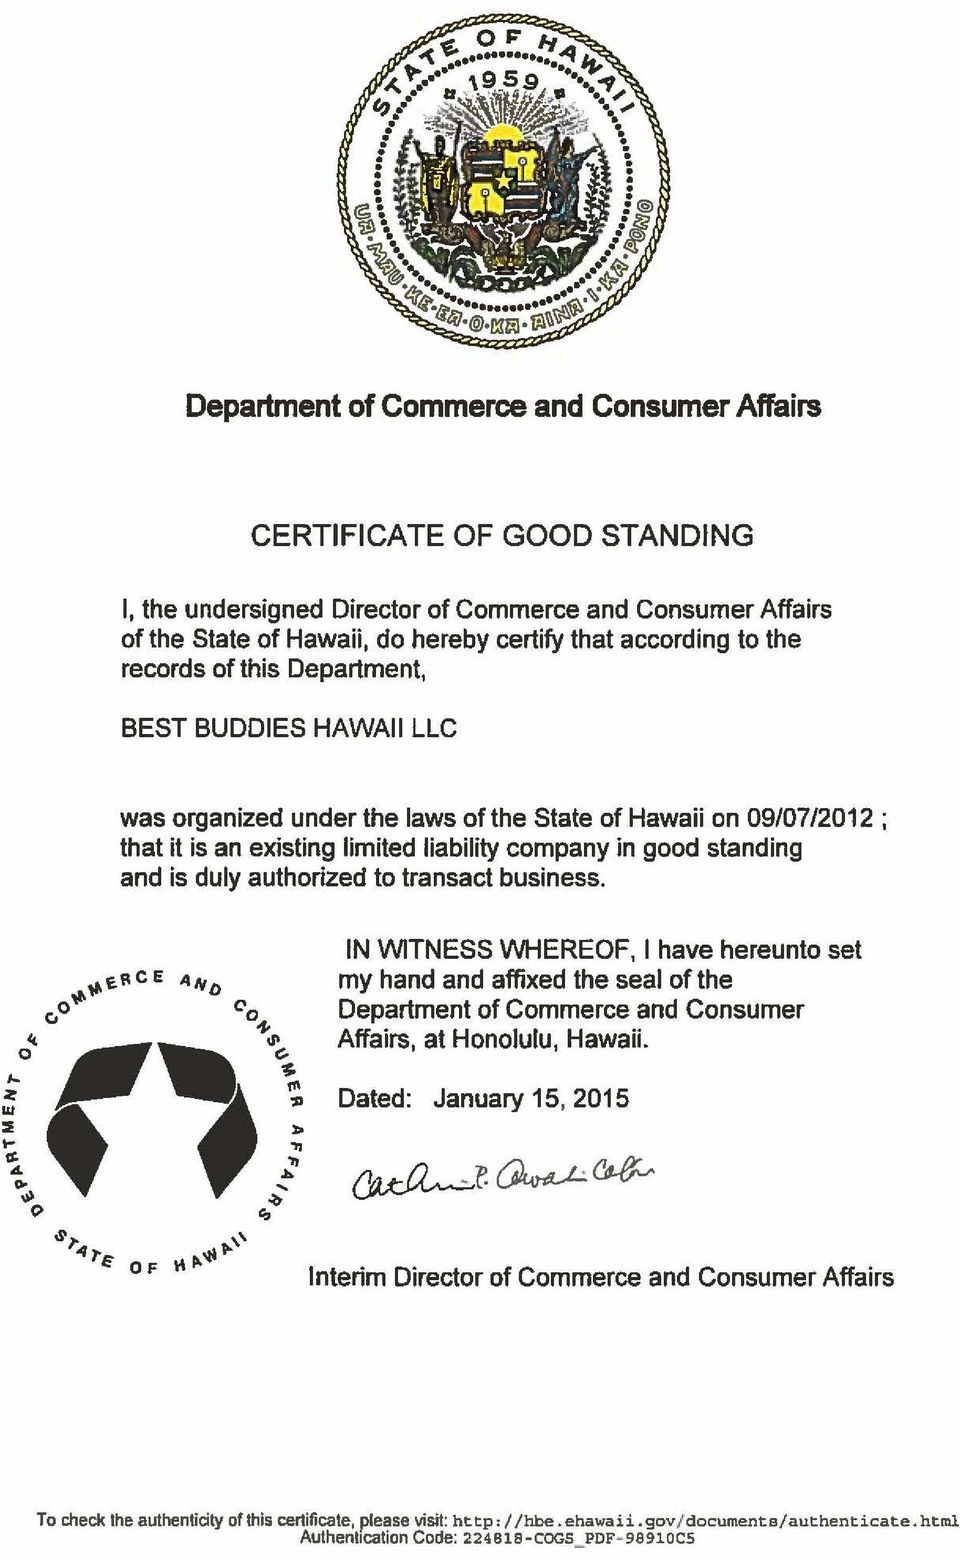 authorized to transact business. IN WITNESS WHEREOF, I have hereunto set my hand and affixed the seal of the Department of Commerce and Consumer Affairs, at Honolulu, Hawaii.